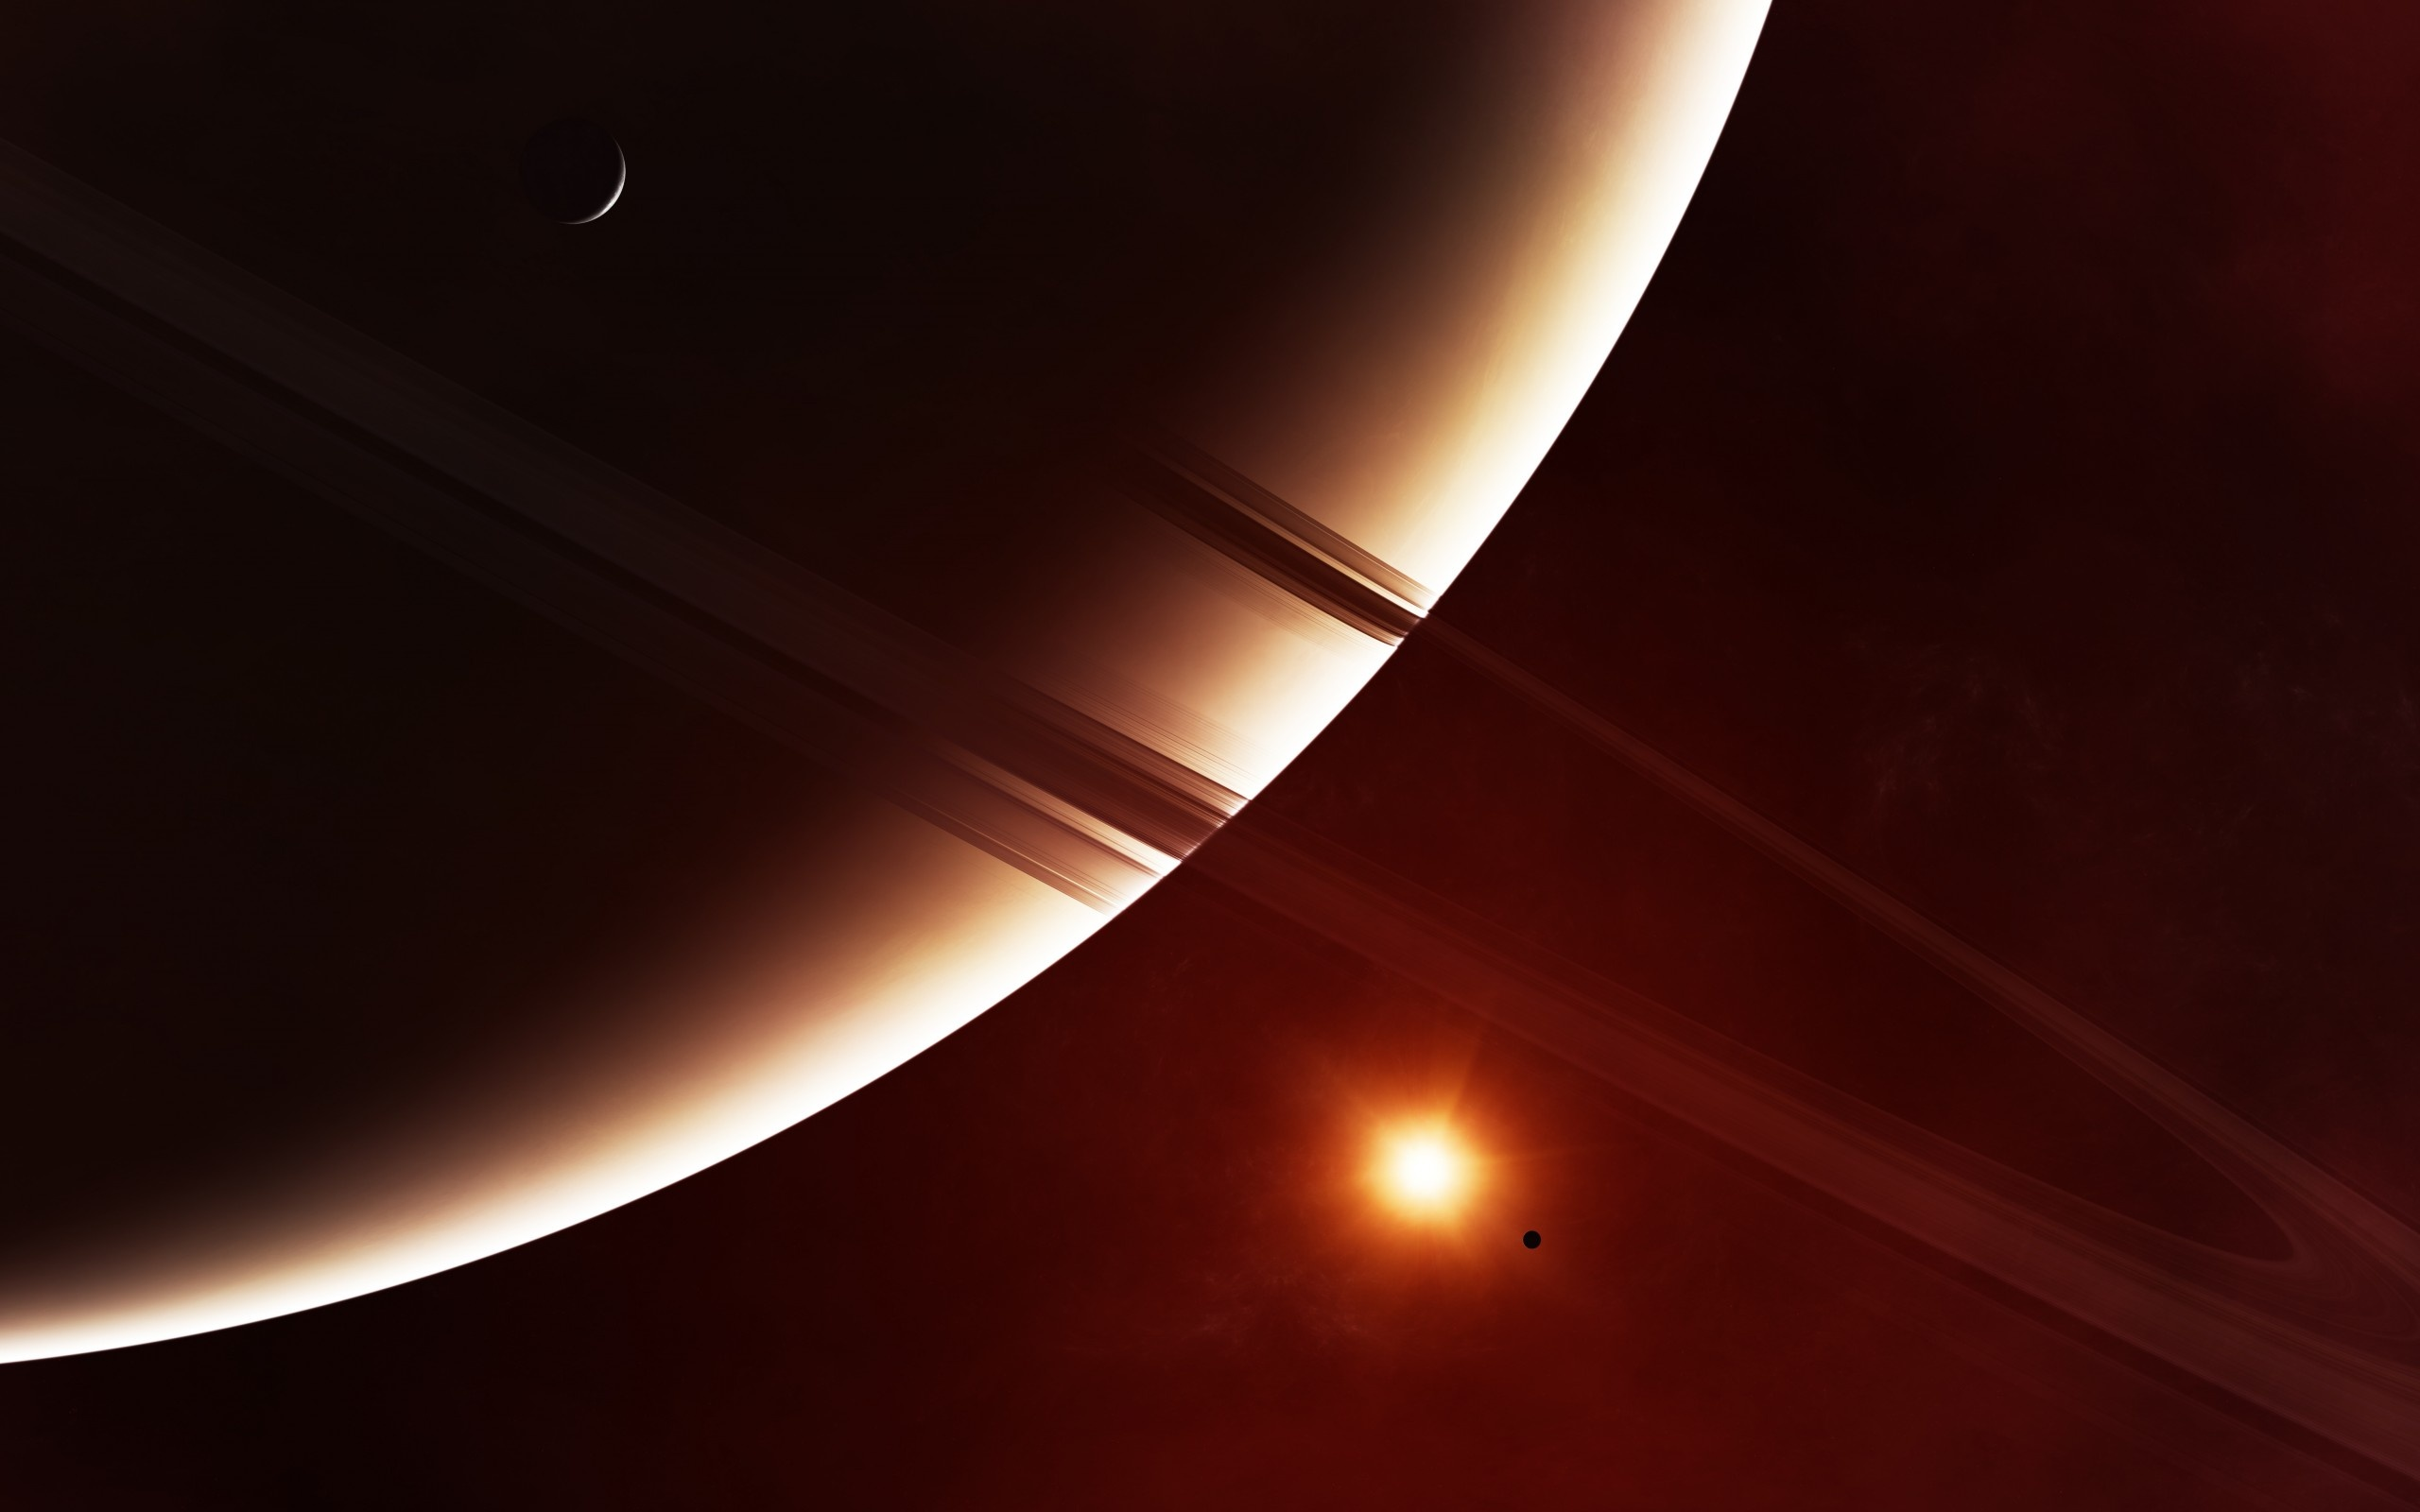 extrasolar planets wallpaper - photo #2